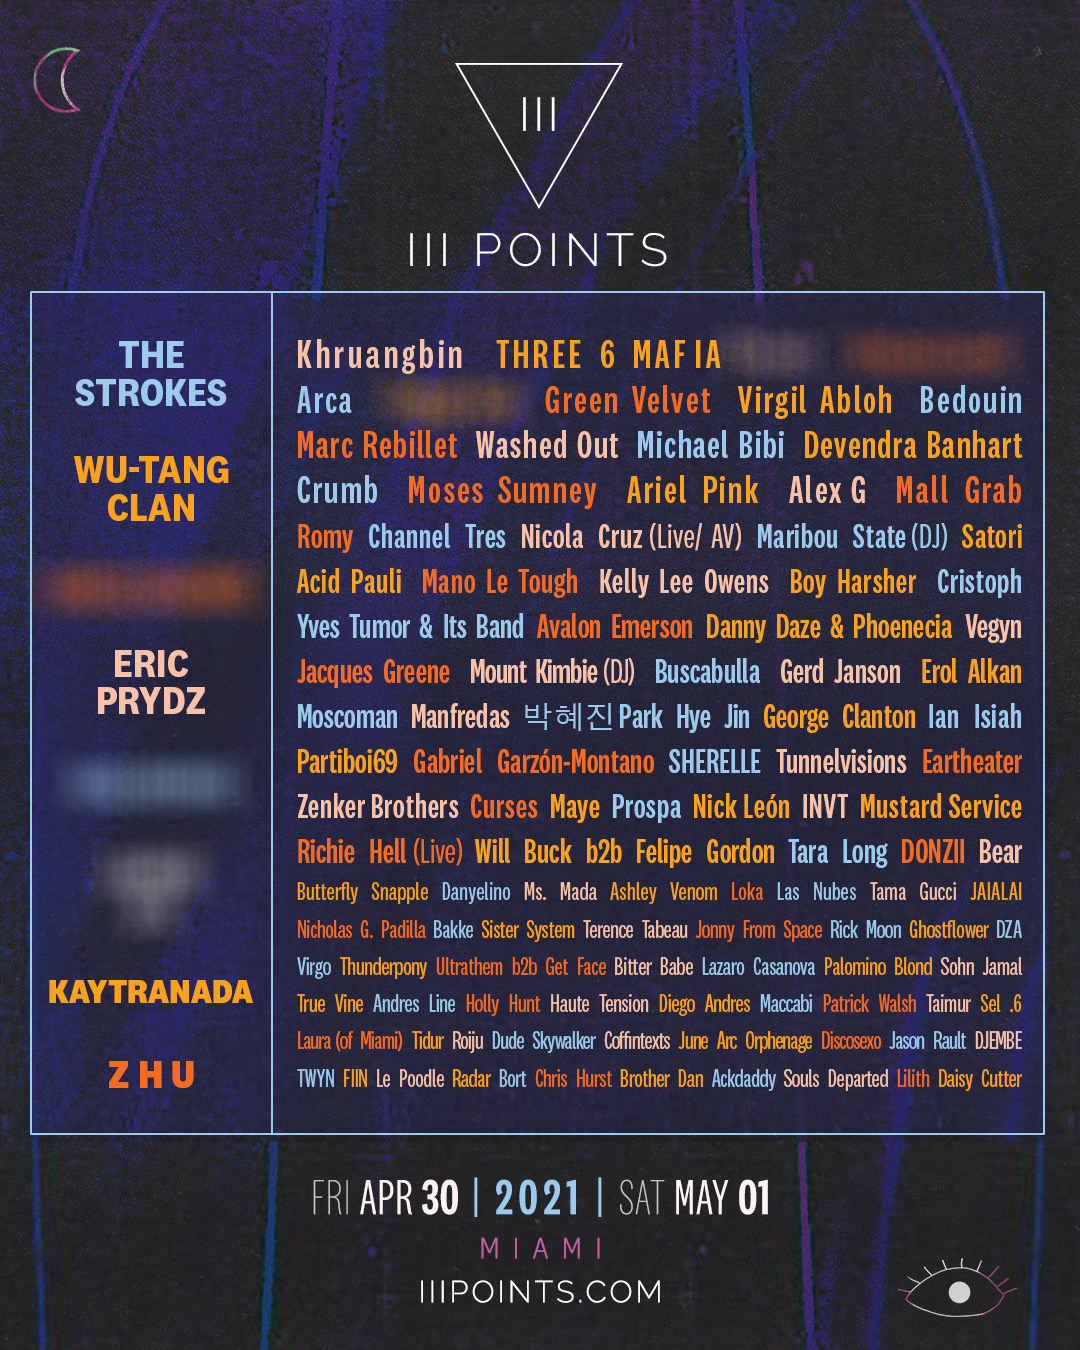 iii points 2021 lineup